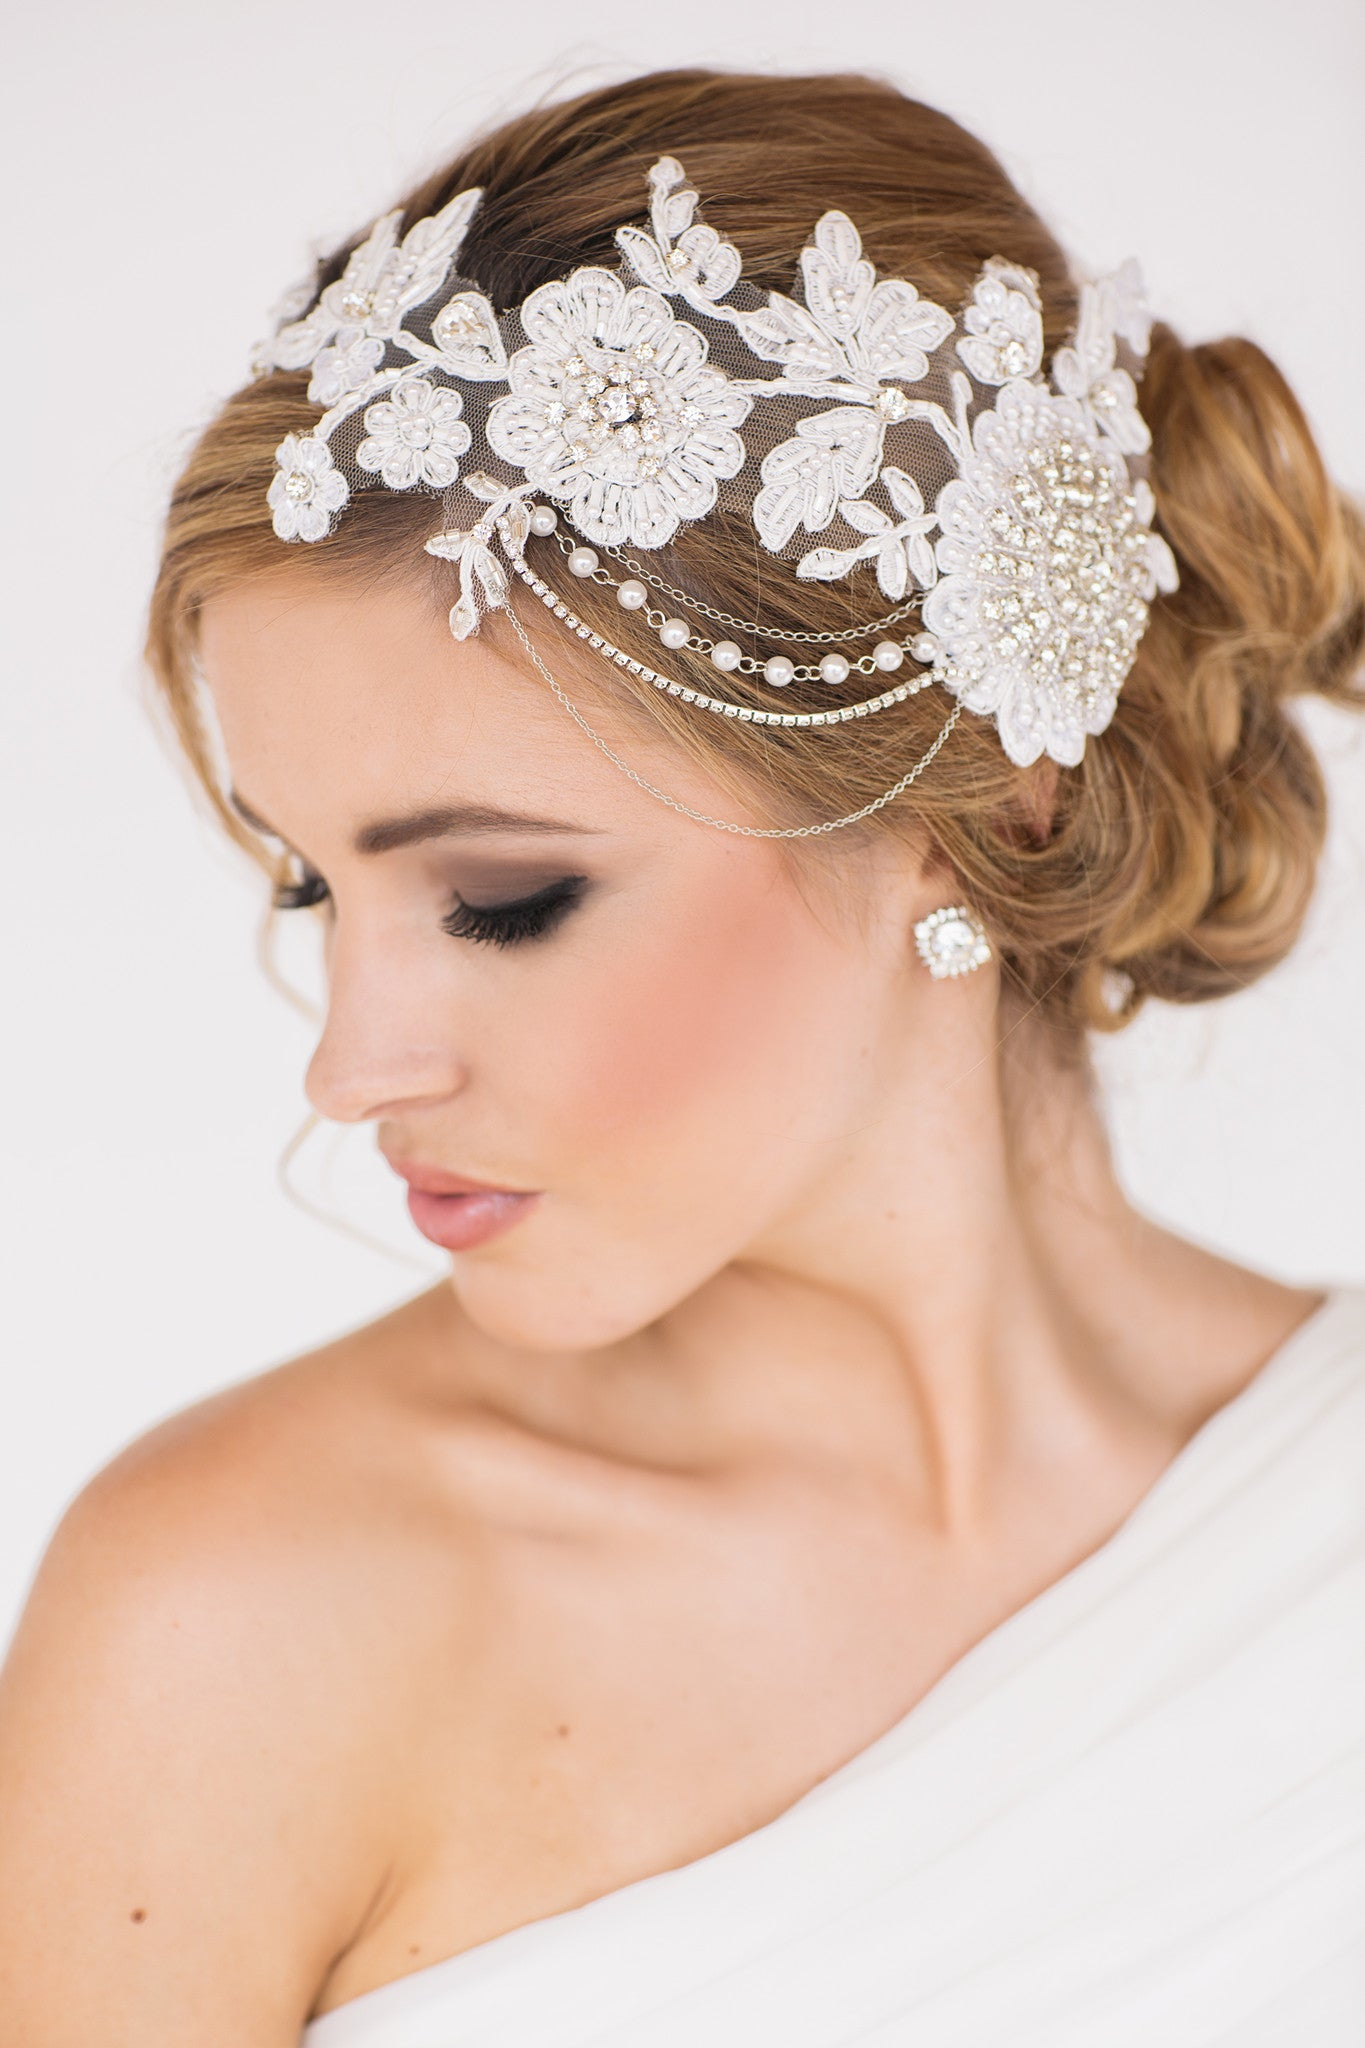 Gabrielle Bridal Headpiece - Perle Jewellery & Makeup  - 1